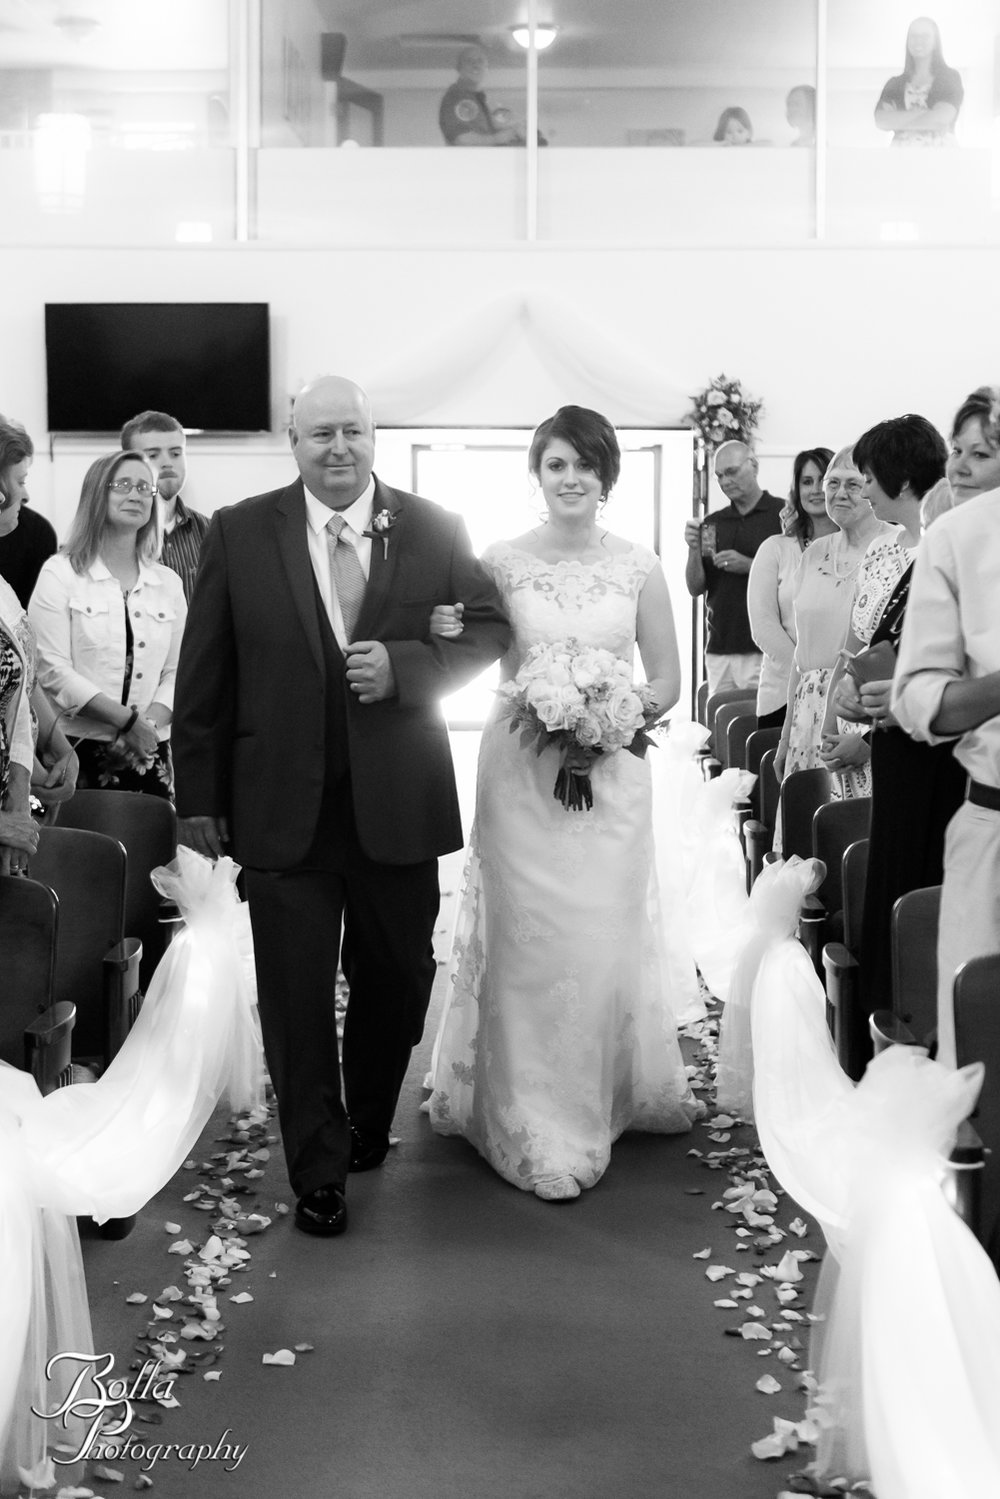 Bolla_Photography_St_Louis_wedding_photographer_Alton_IL__Baptist_Church-0135.jpg